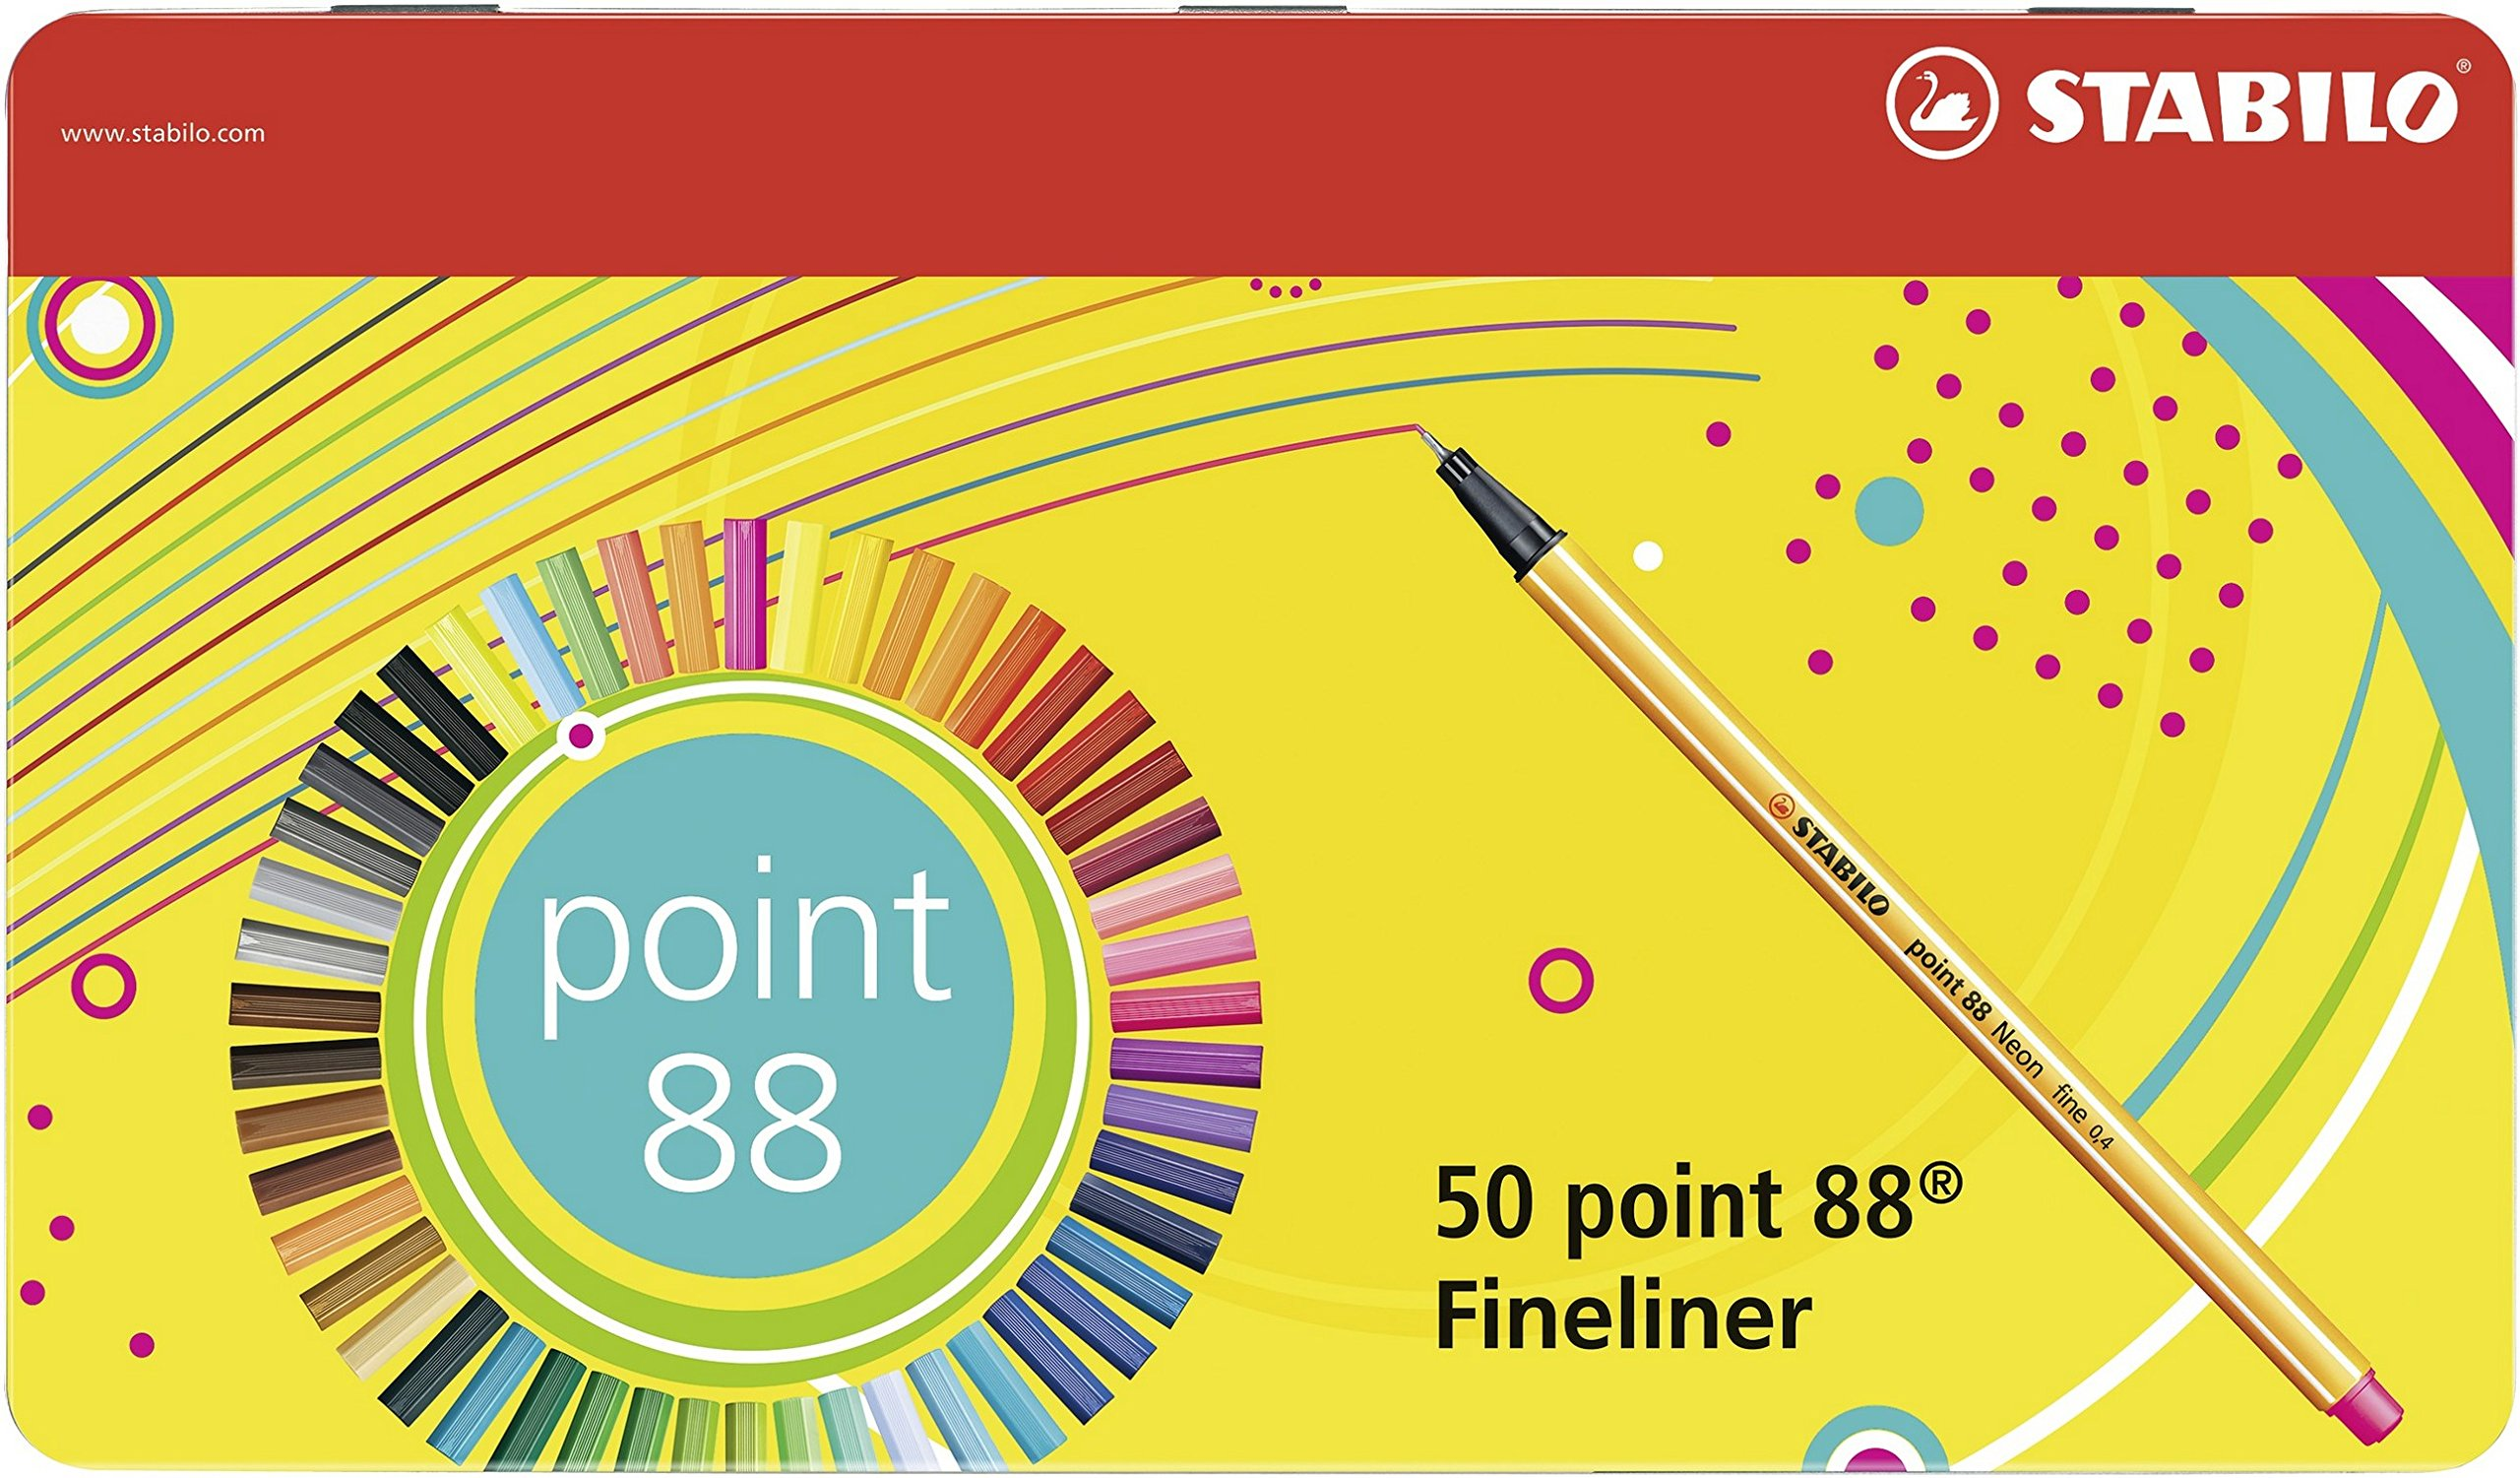 STABILO point 88 fineliner - metal tin of 50 colors - 8850-6 by STABILO (Image #1)